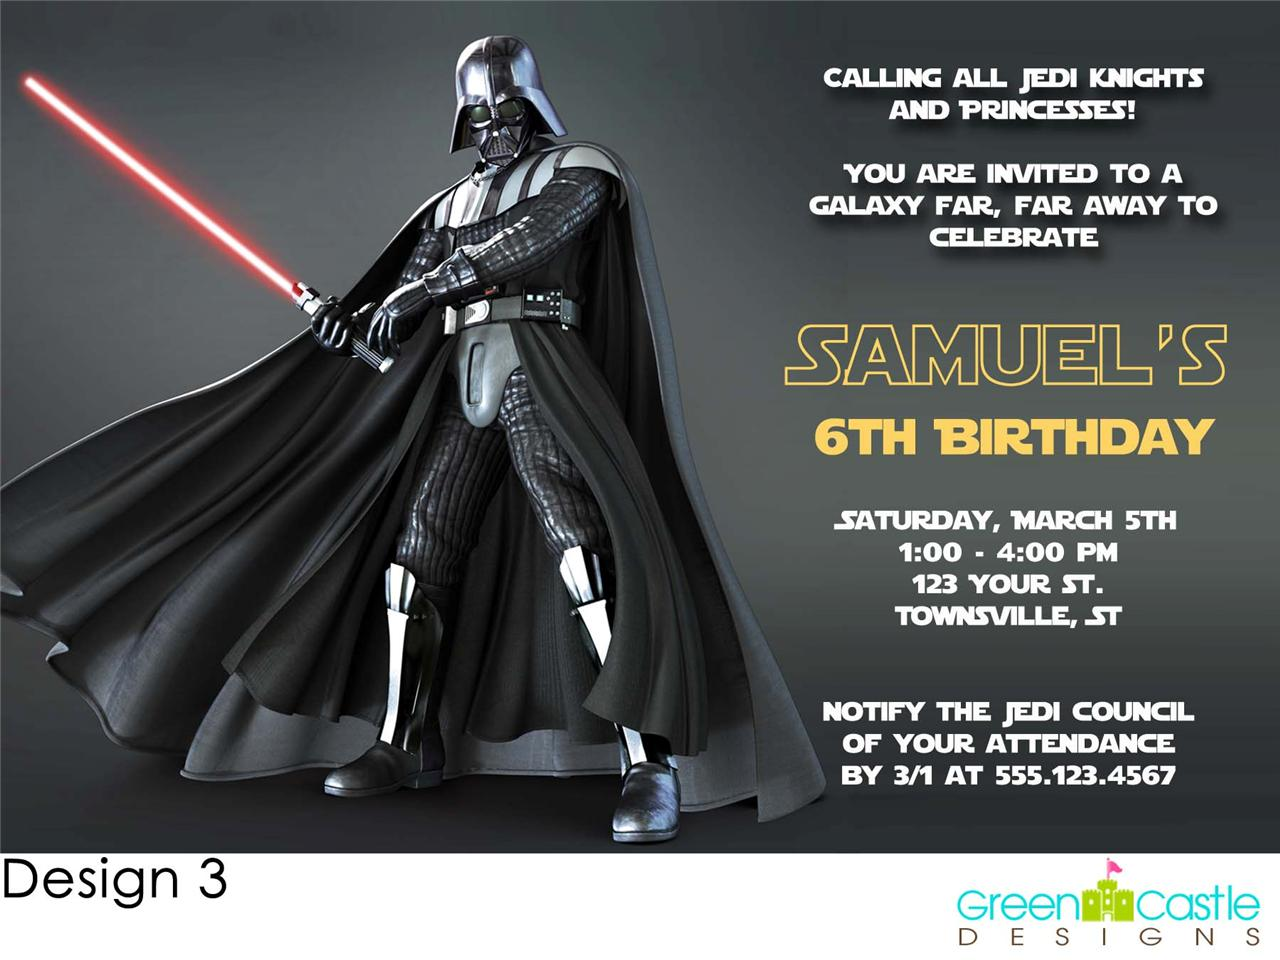 Details about 20 Star Wars Darth Vader Birthday Party Invitations